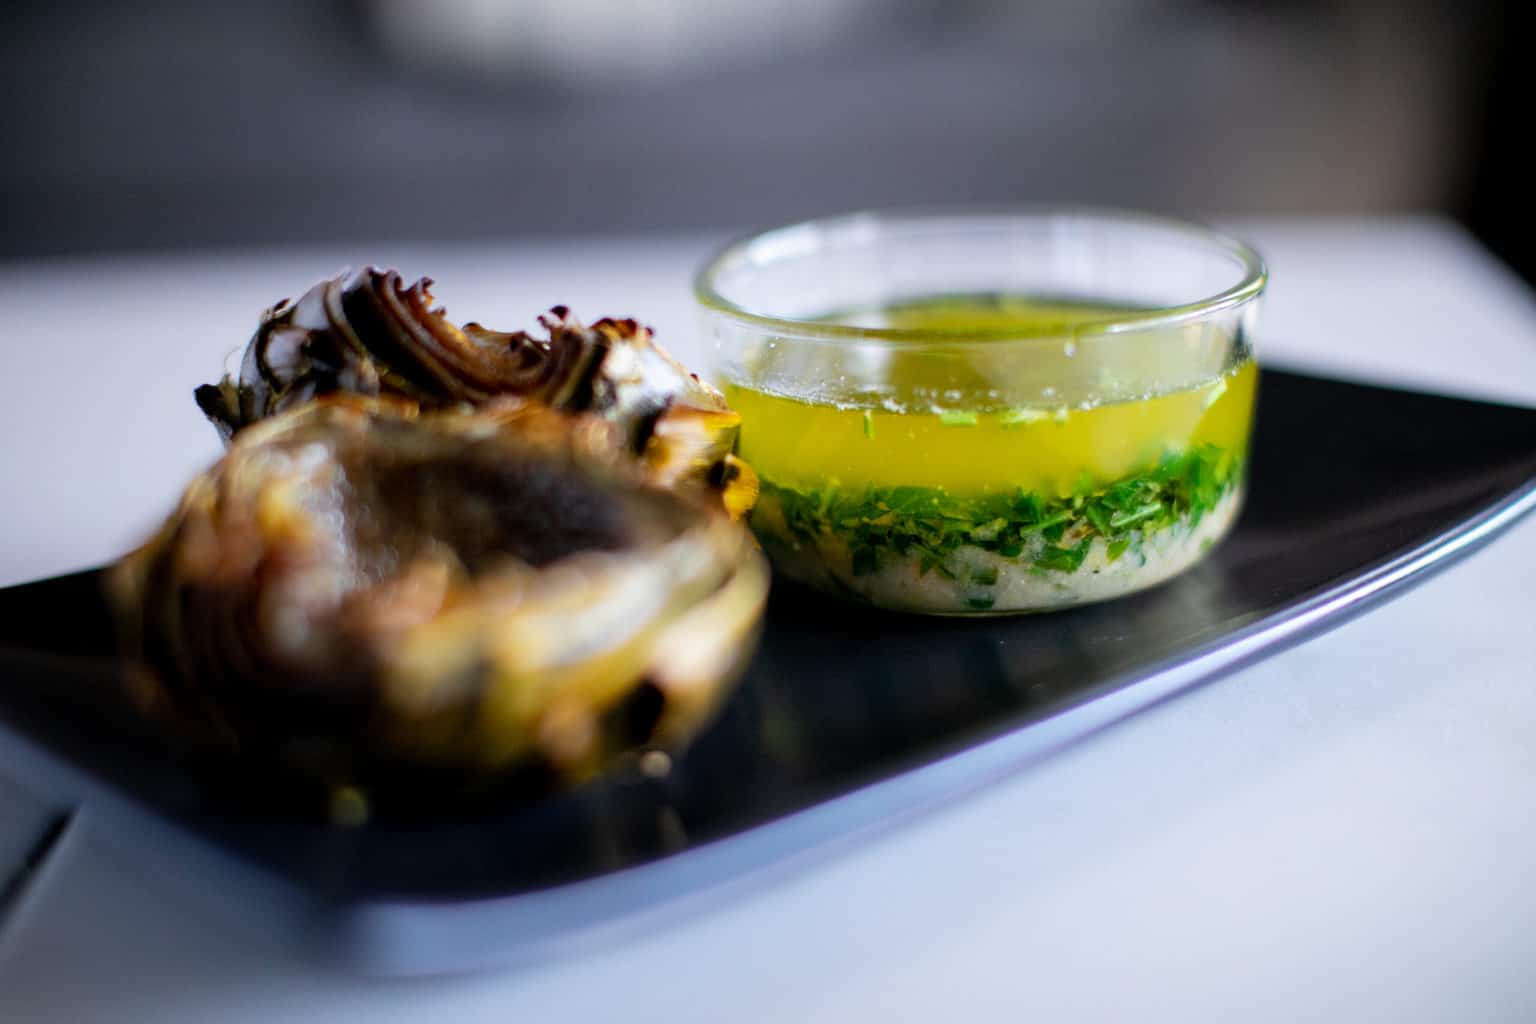 Roasted artichokes on a plate with lemon garlic butter sauce